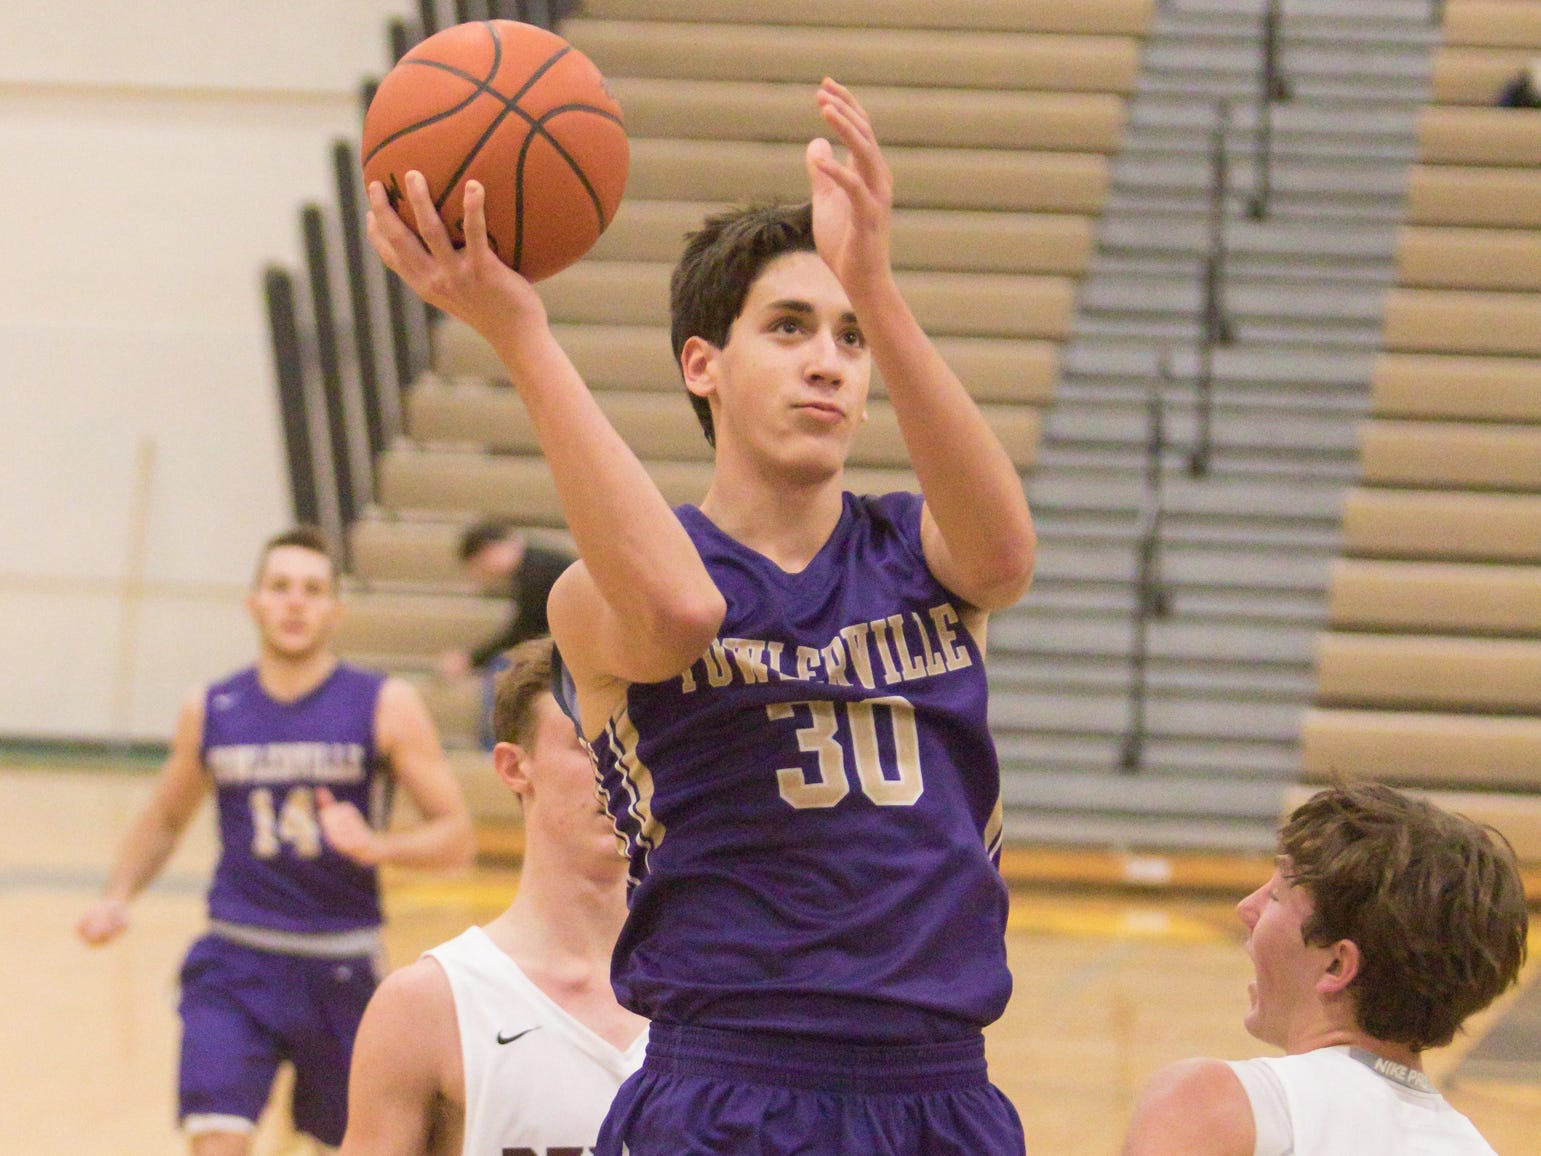 Josh Dufore of Fowlerville lines up his shot in the tournament game against Dexter Friday, Dec. 28, 2018.